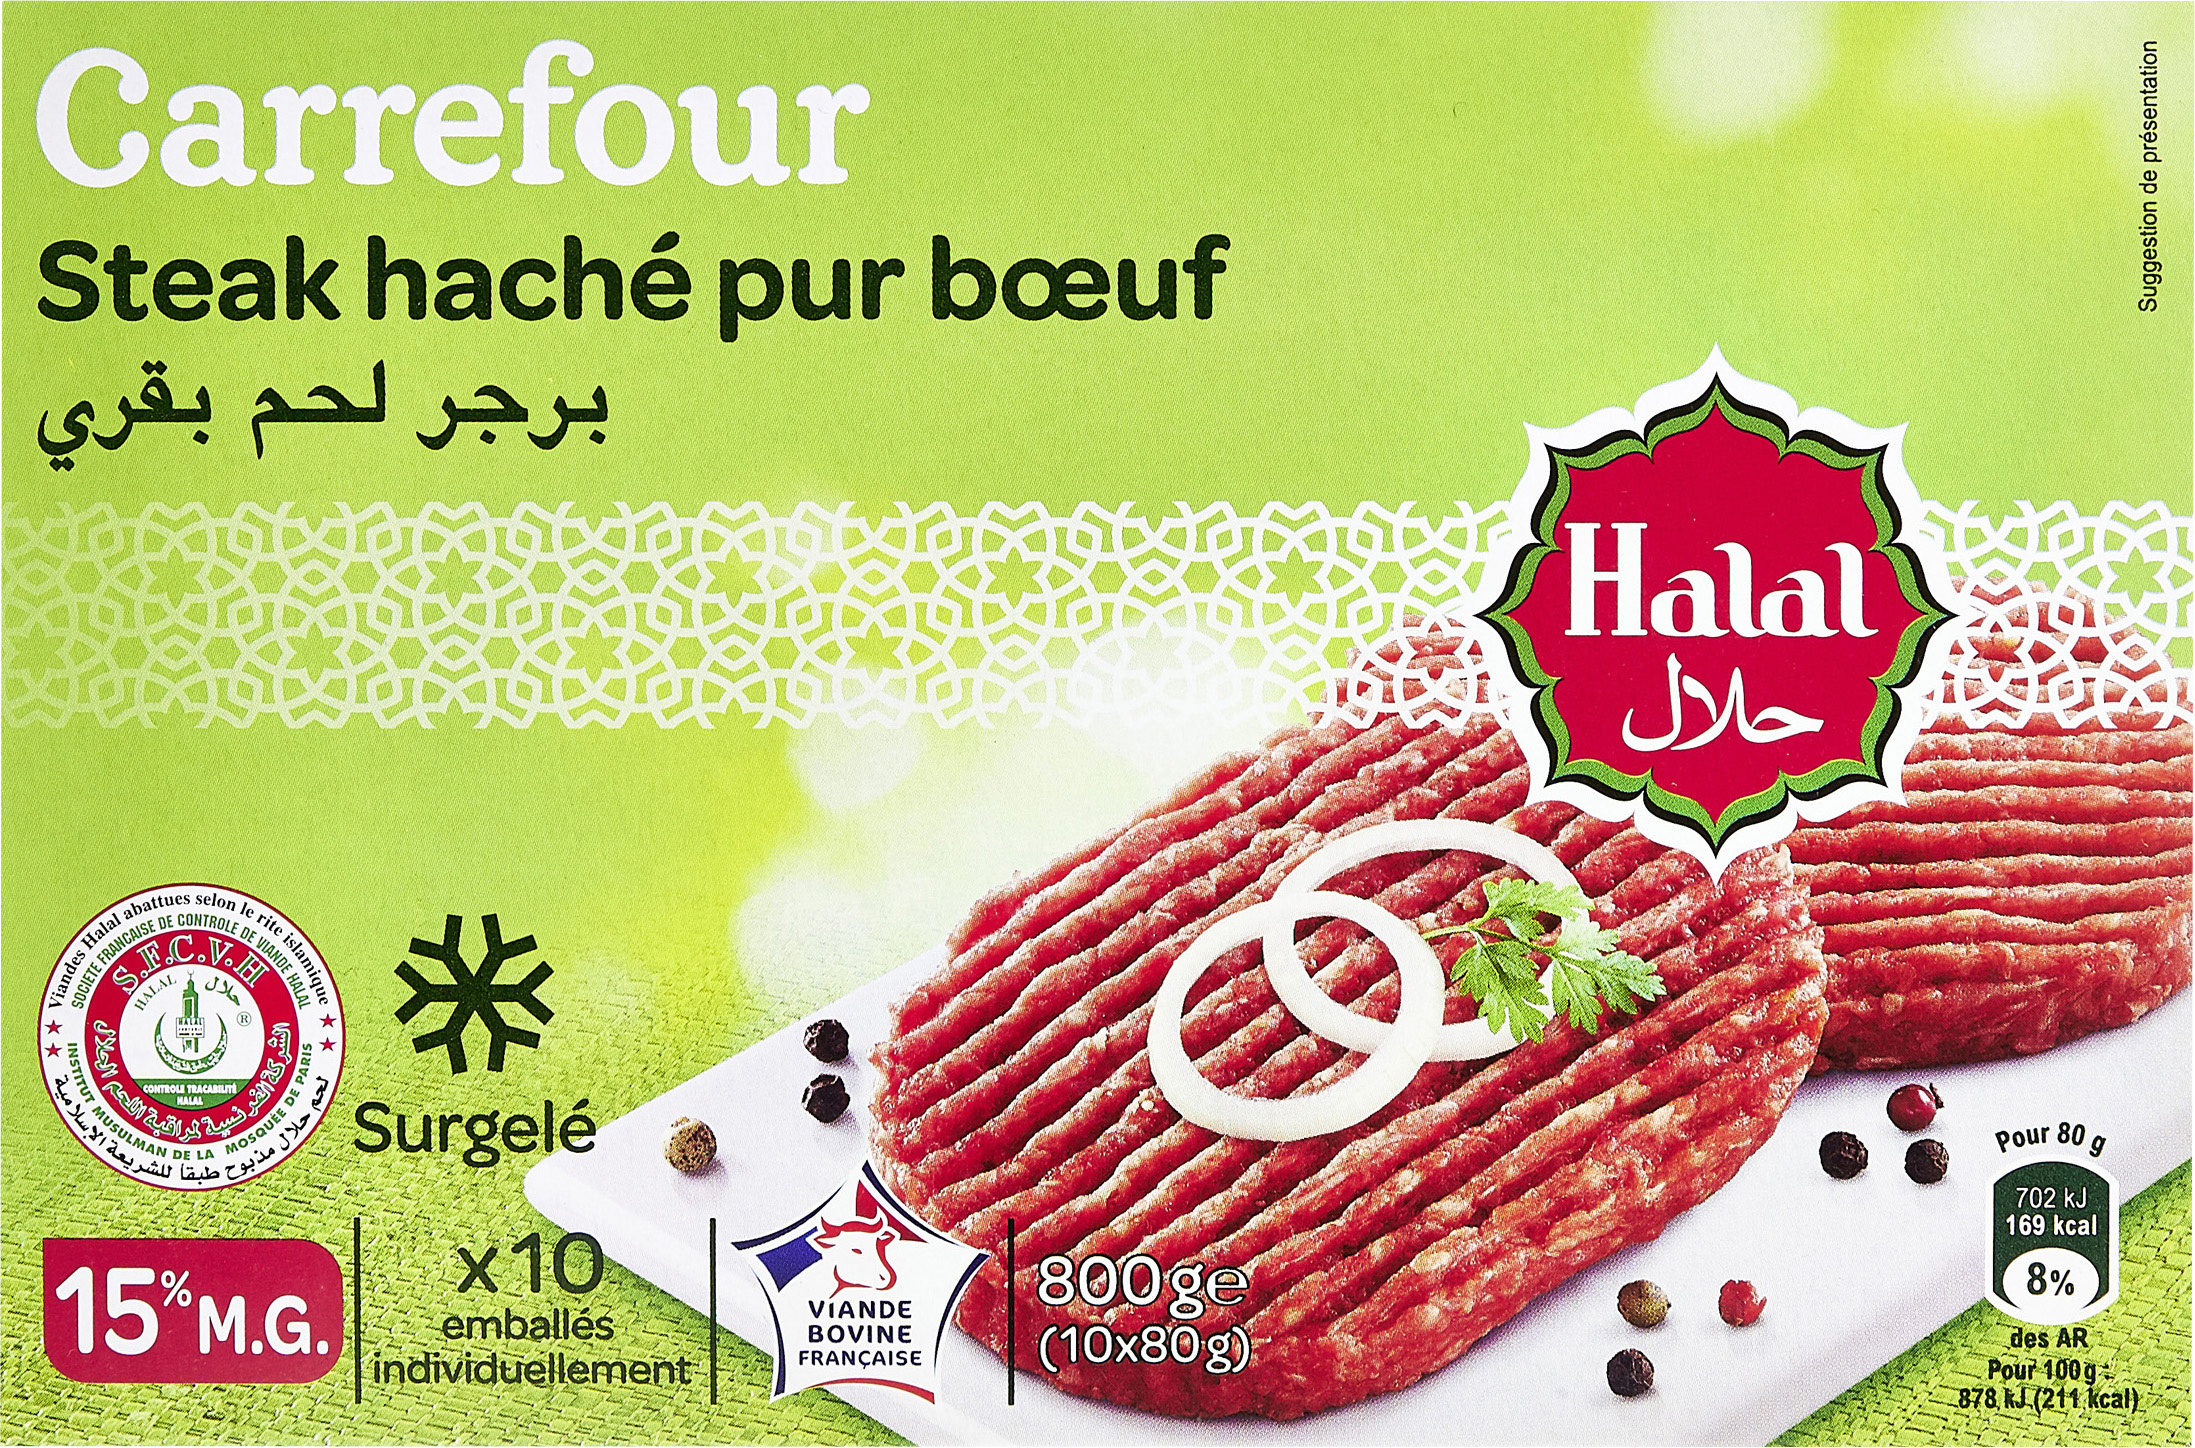 Steaks hachés pur bœuf - Product - fr